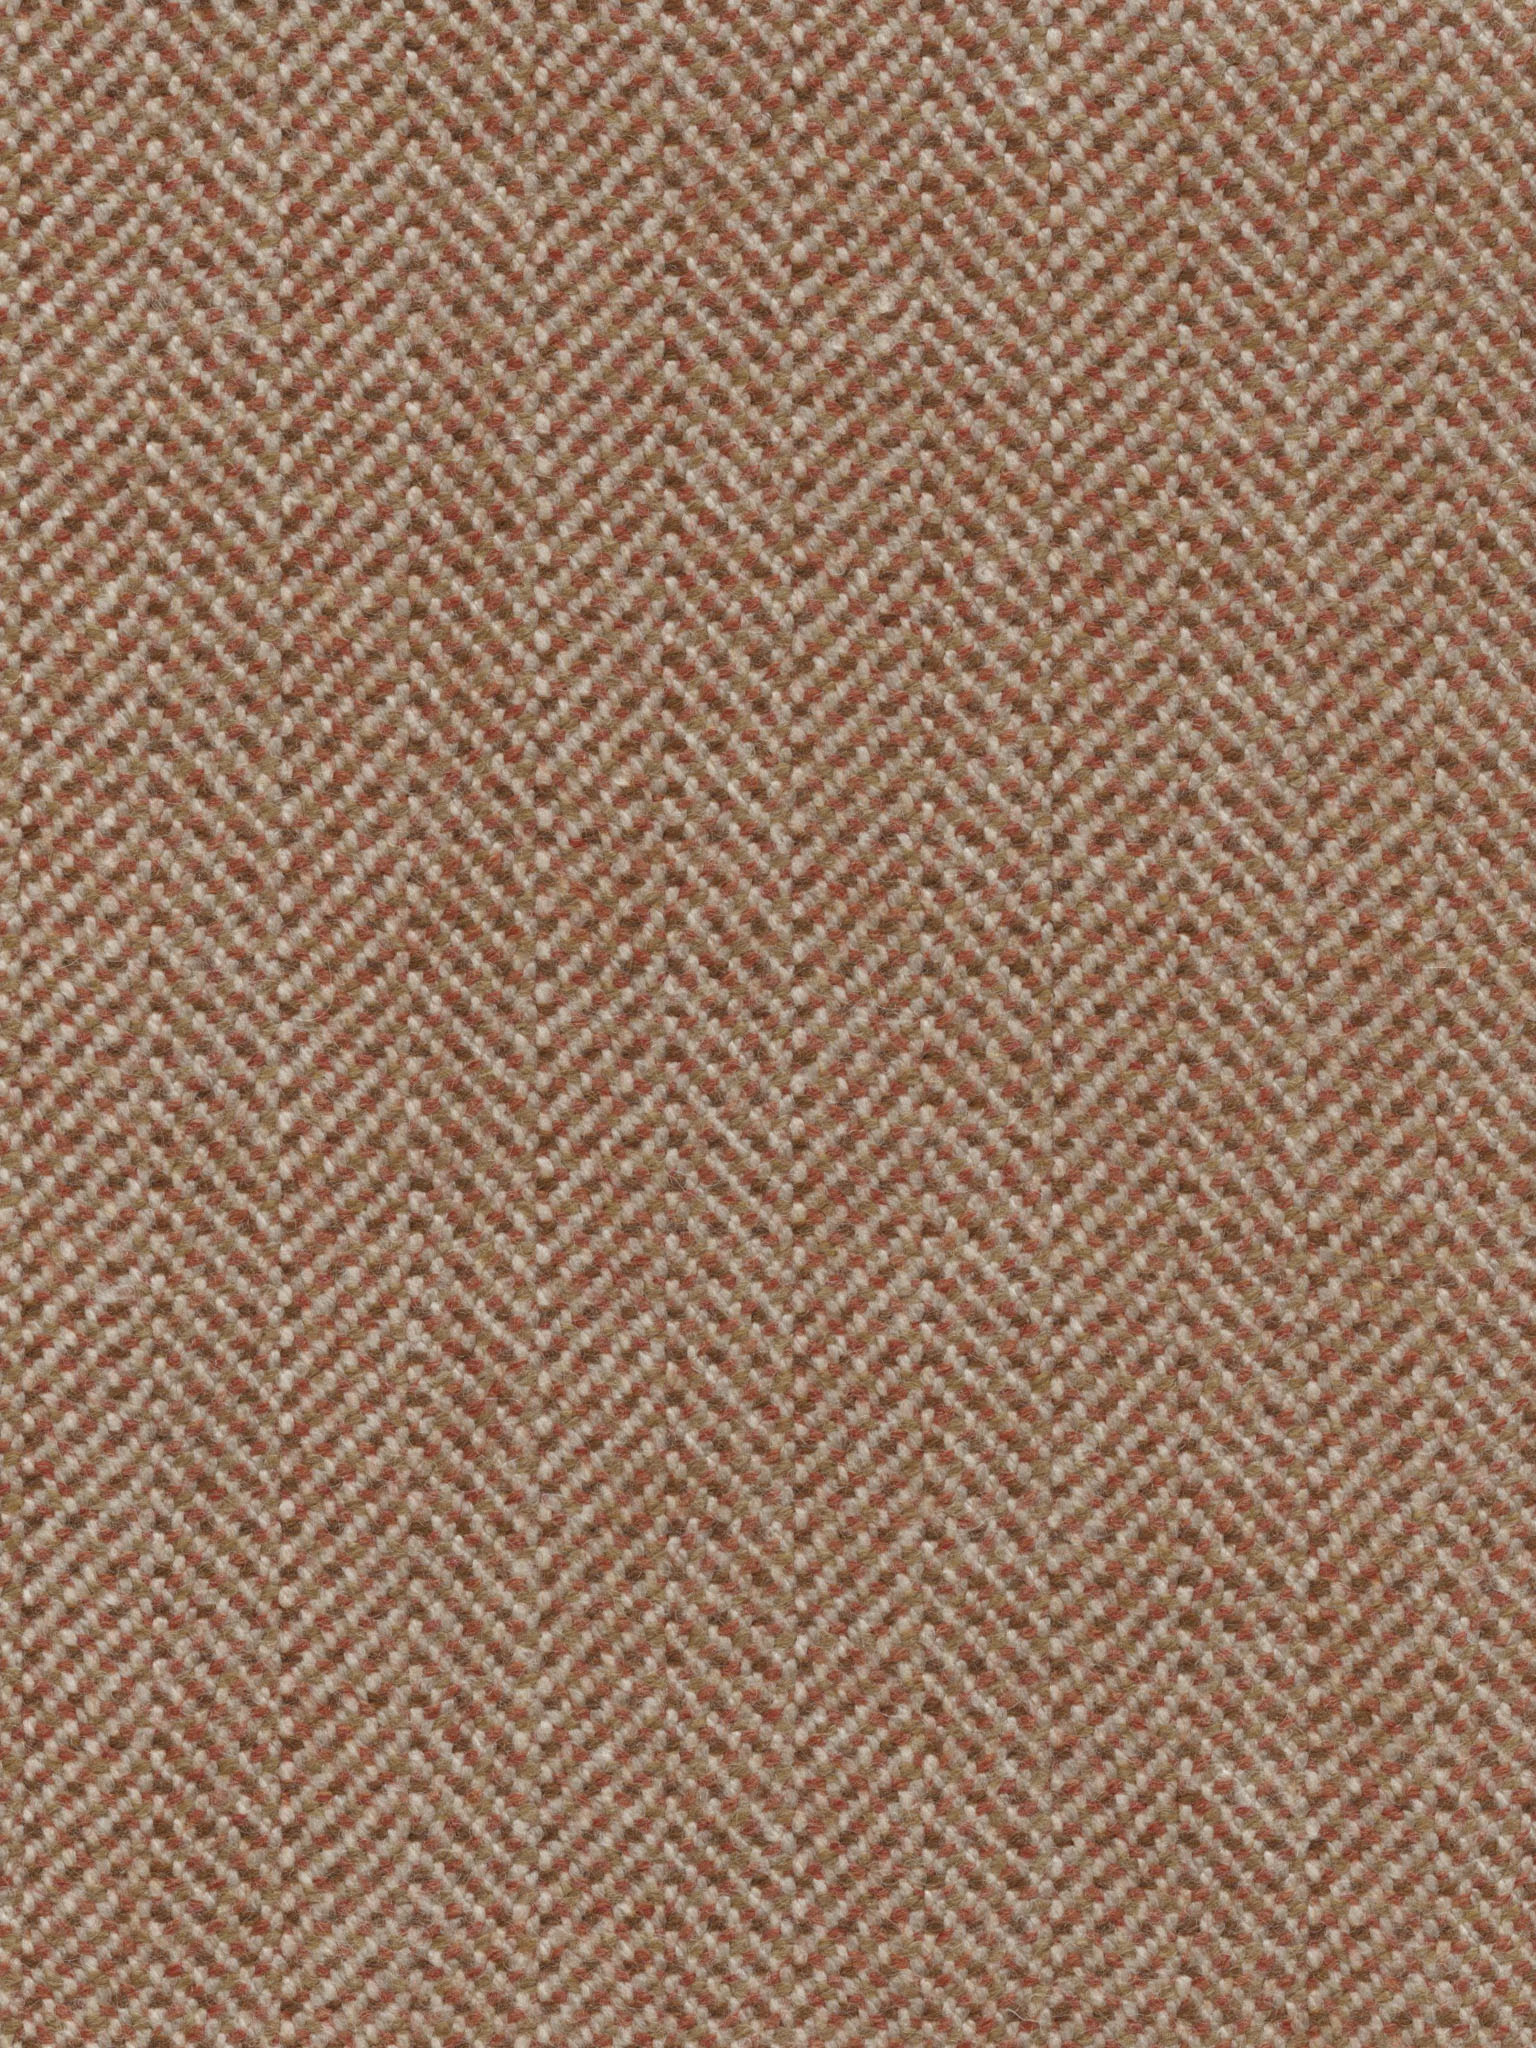 Savile Row Windsor Tweed DE12106